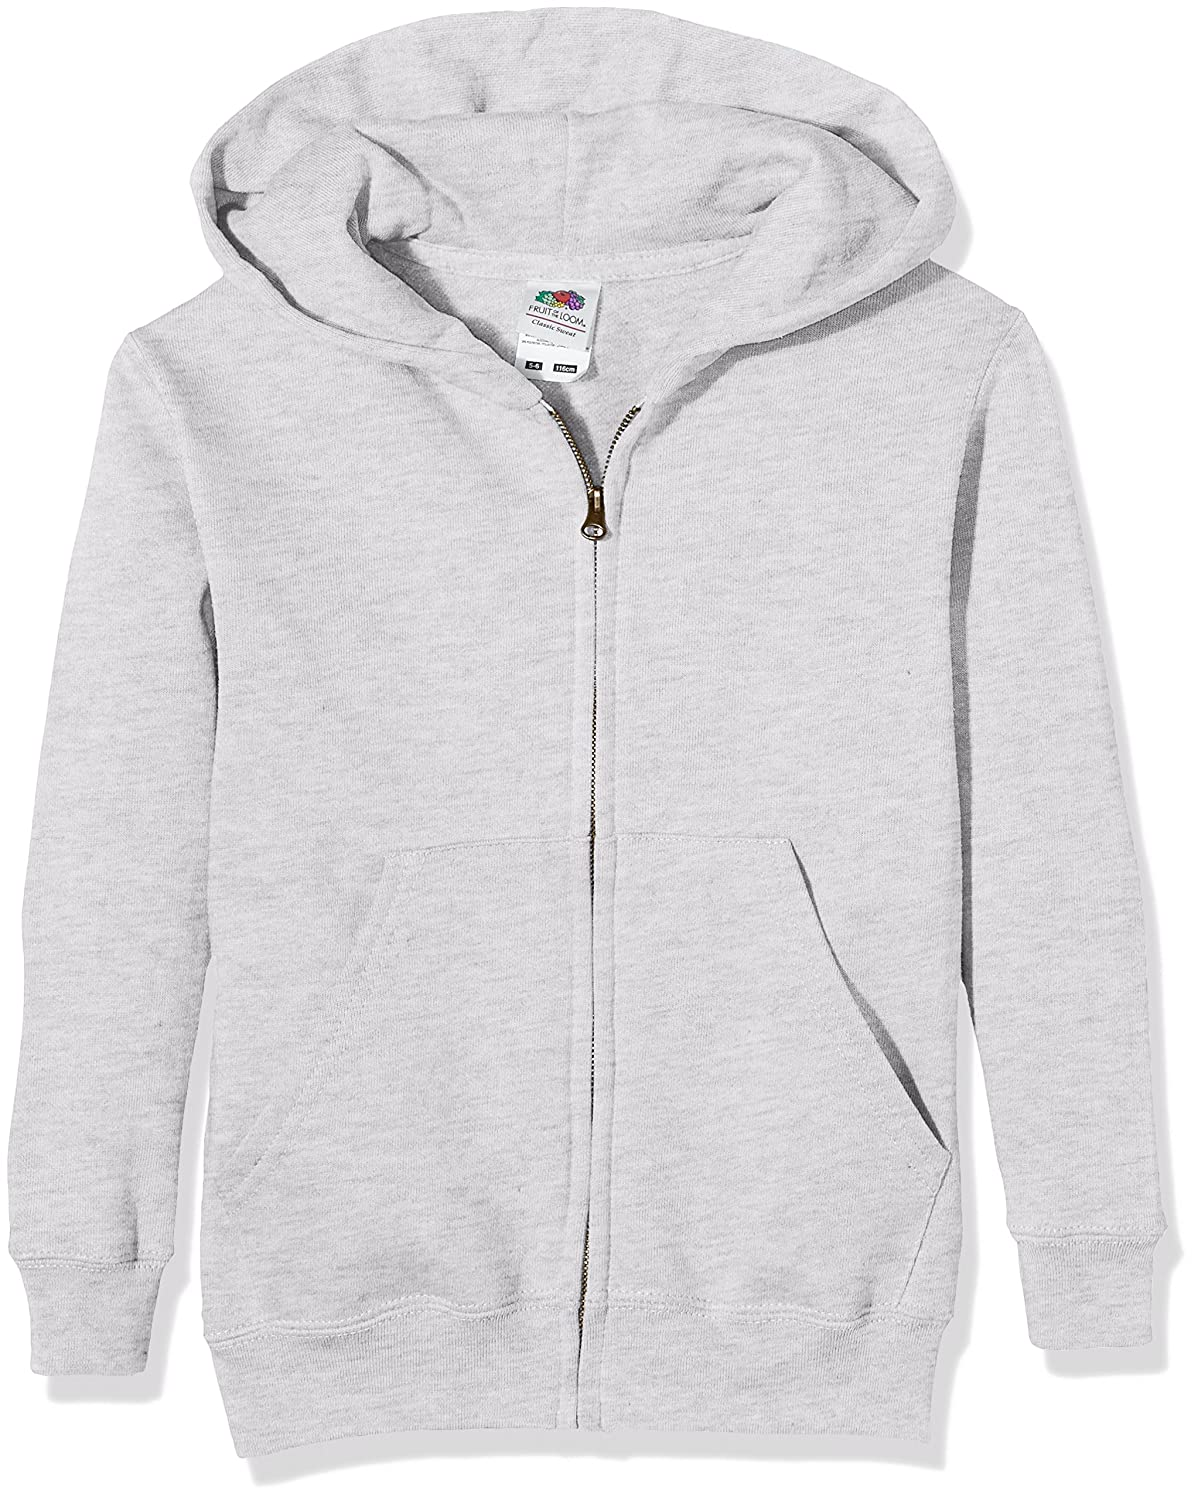 Fruit of the Loom Unisex Kids Zip front Classic Hooded Sweat